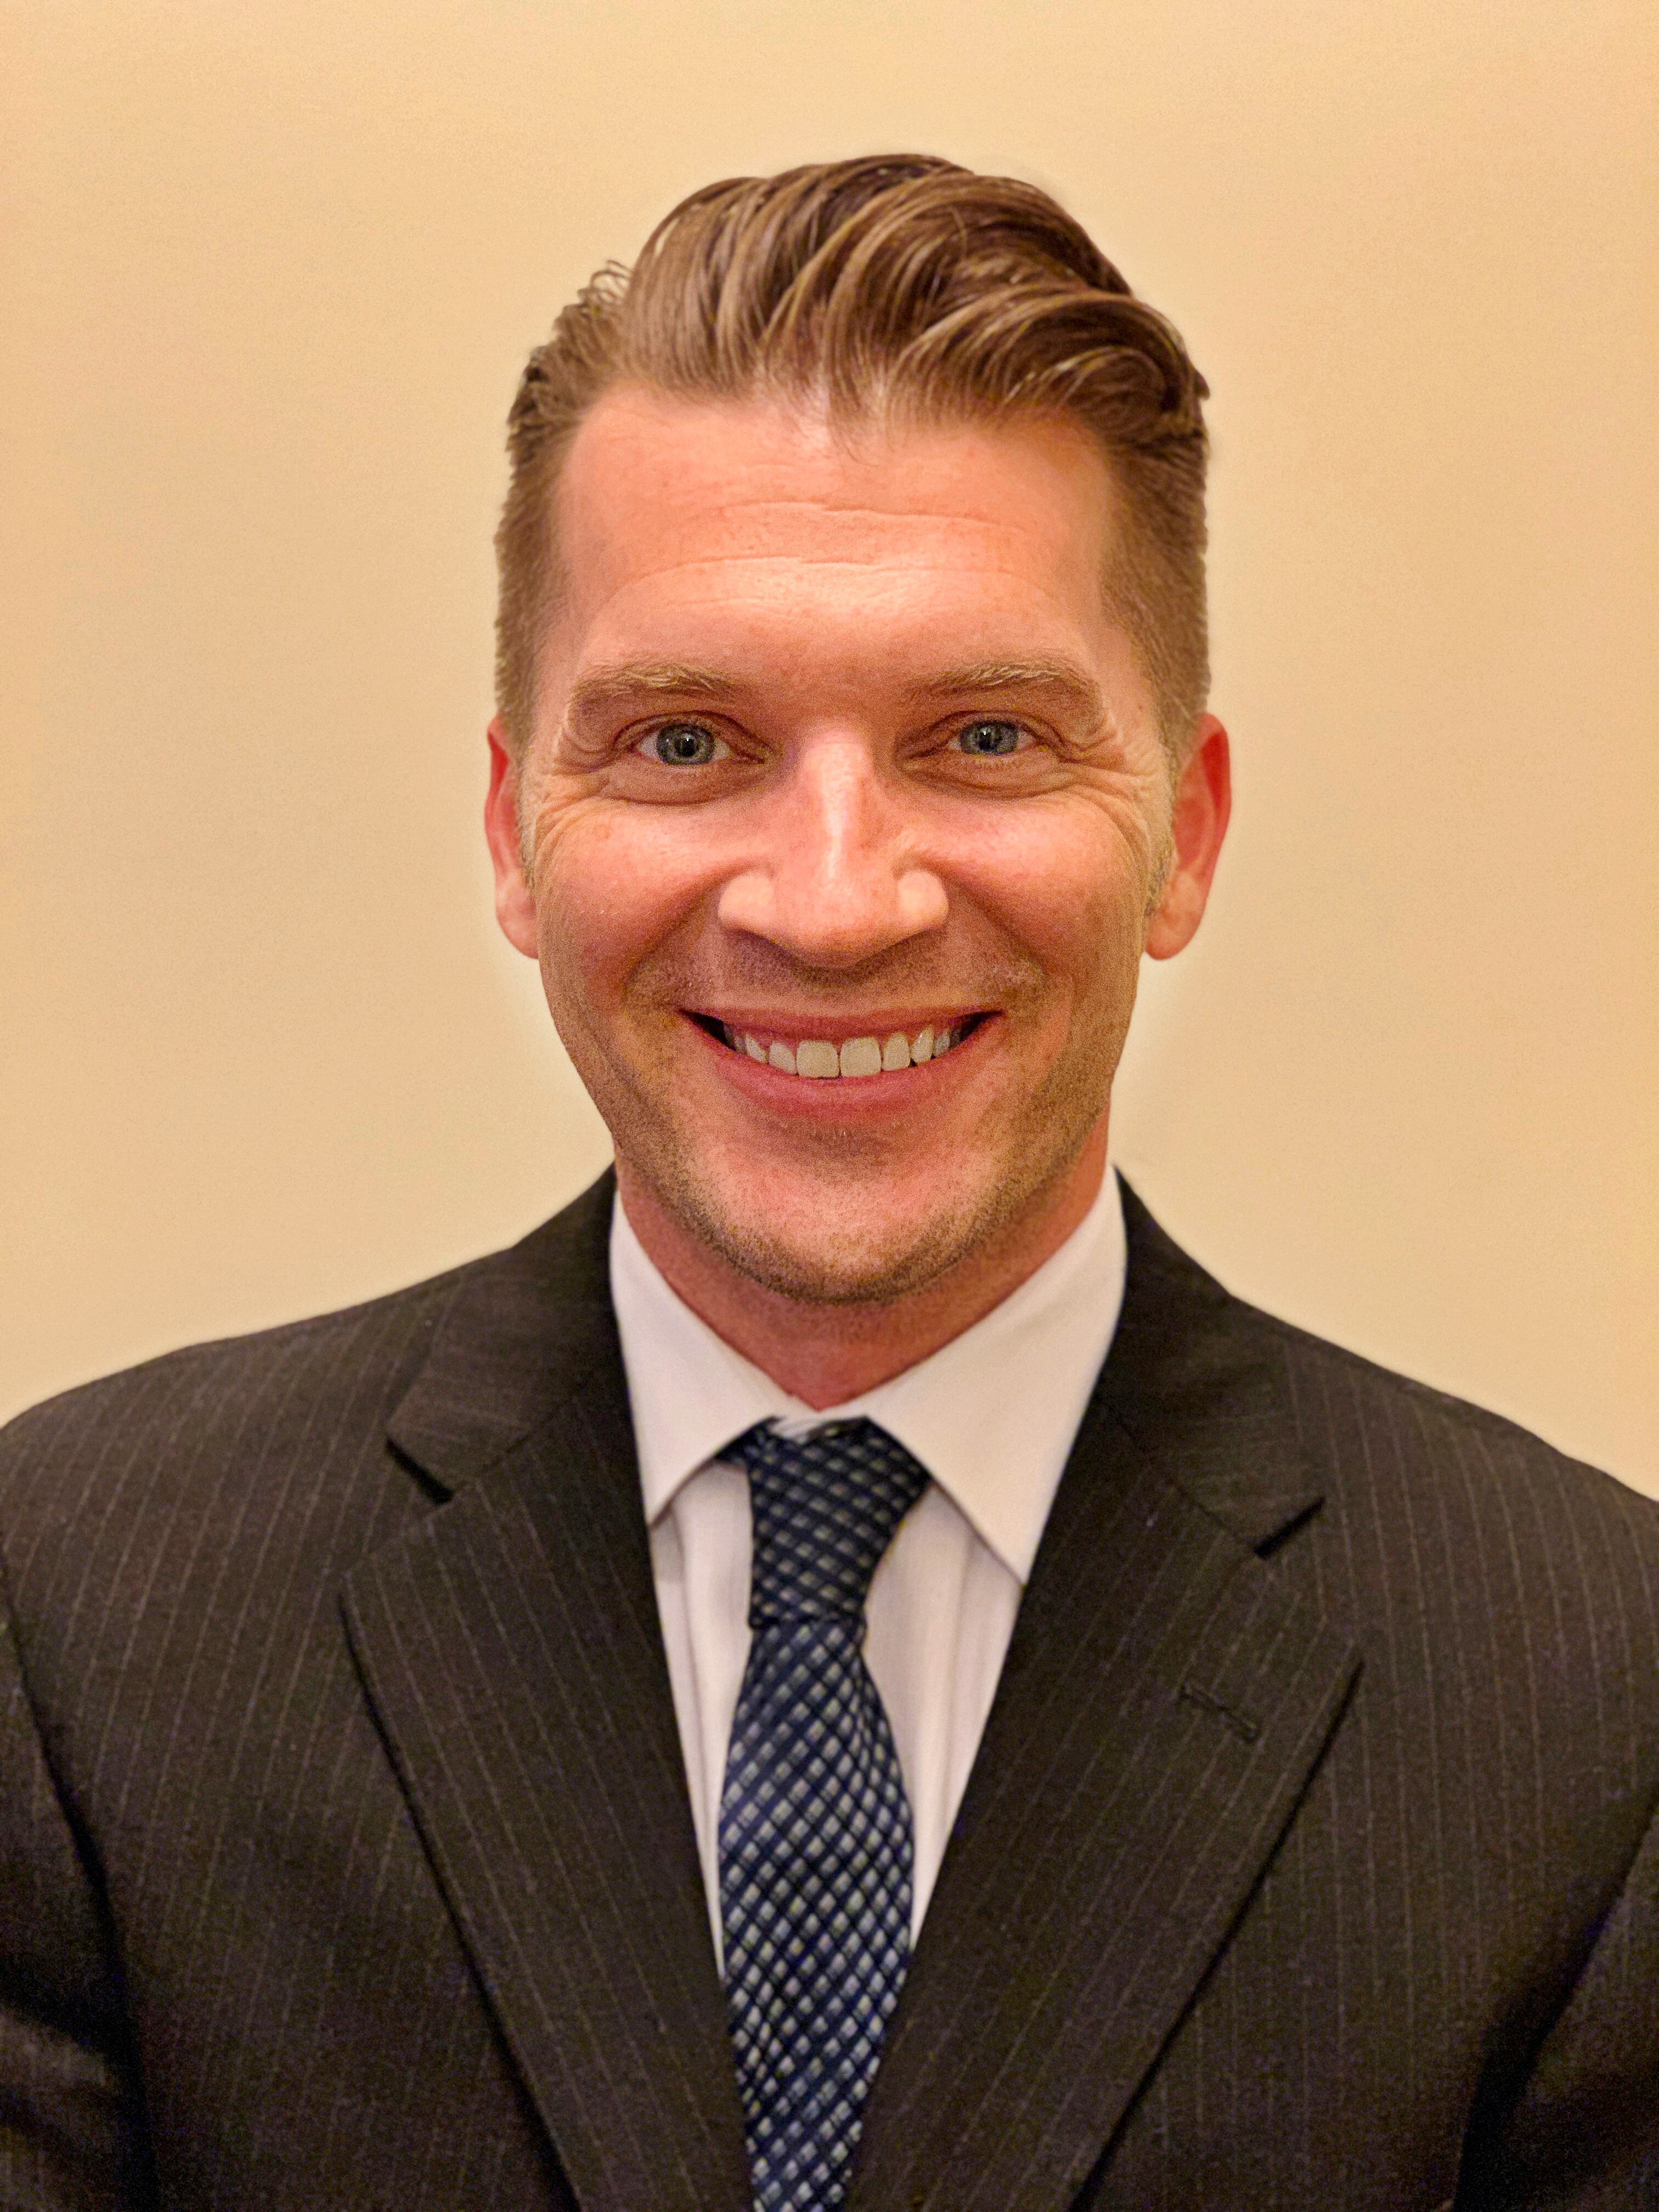 Michael Olender appointed as Director of AARP North Carolina